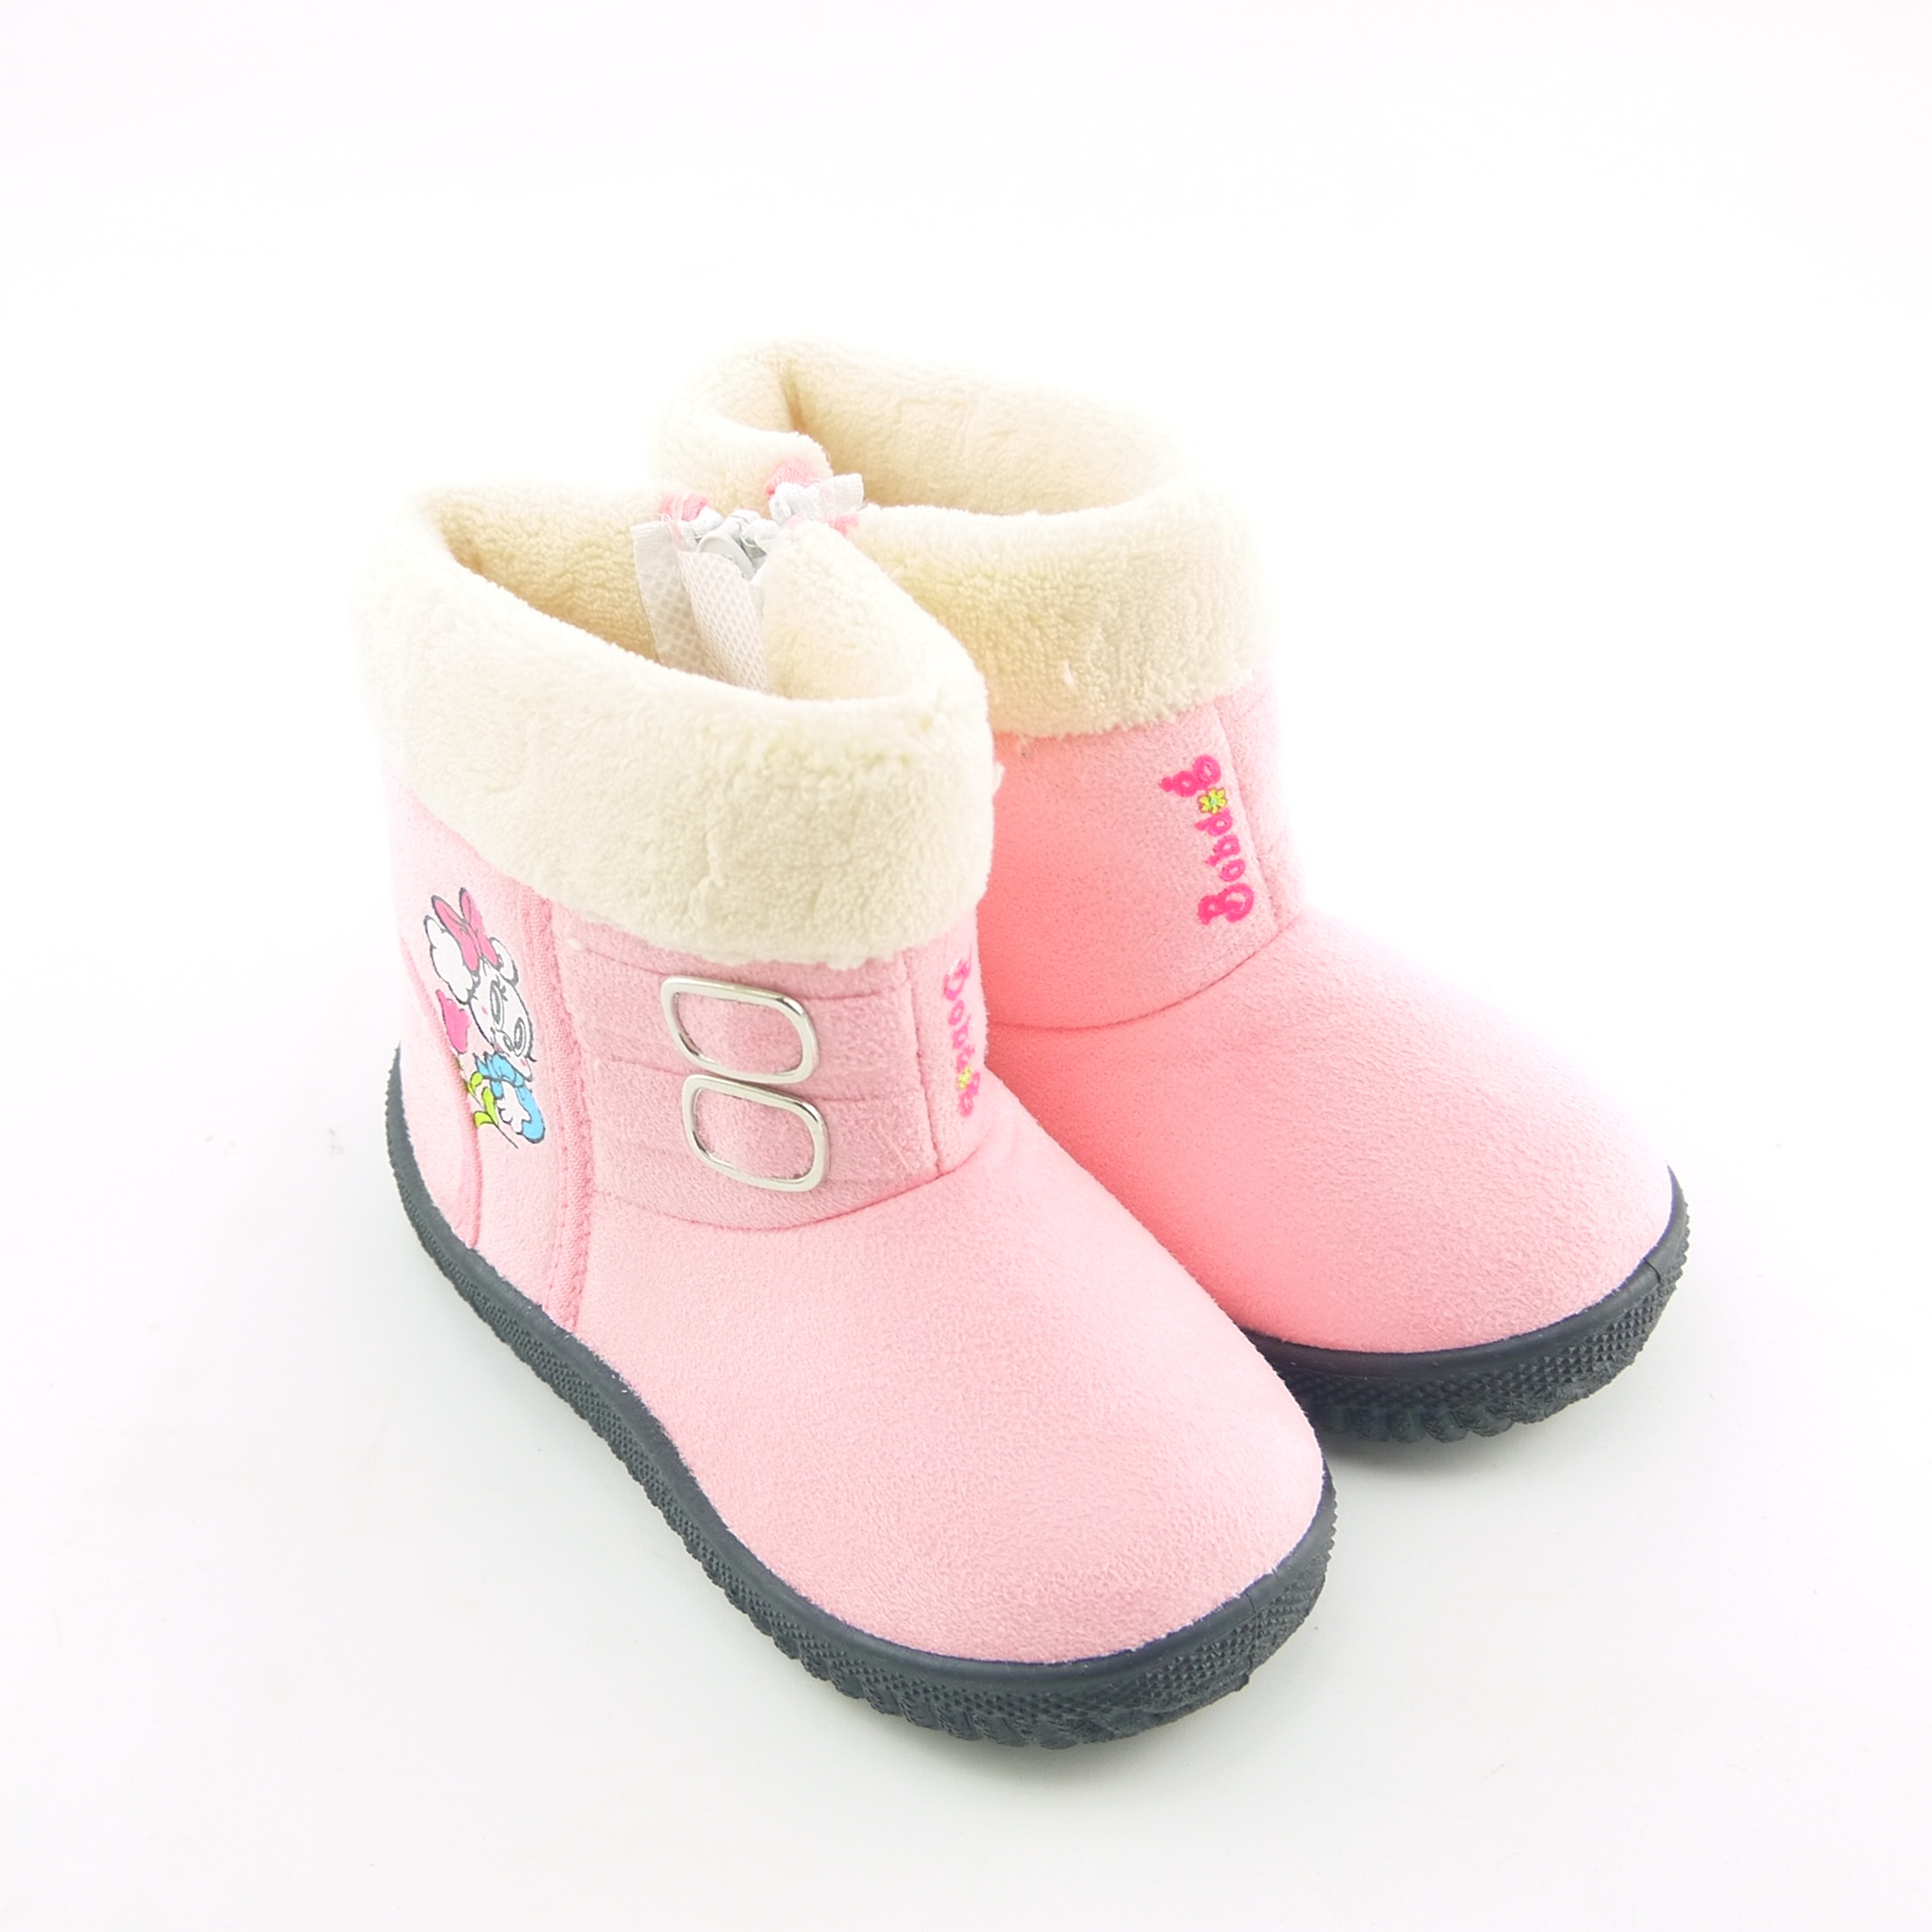 Koovan Baby Shoes 2020 Winter Warm Children Boots Dog Cartoon Cotton Girls Snow Boot Boys Girls Kids Rubber Shoes 23-27